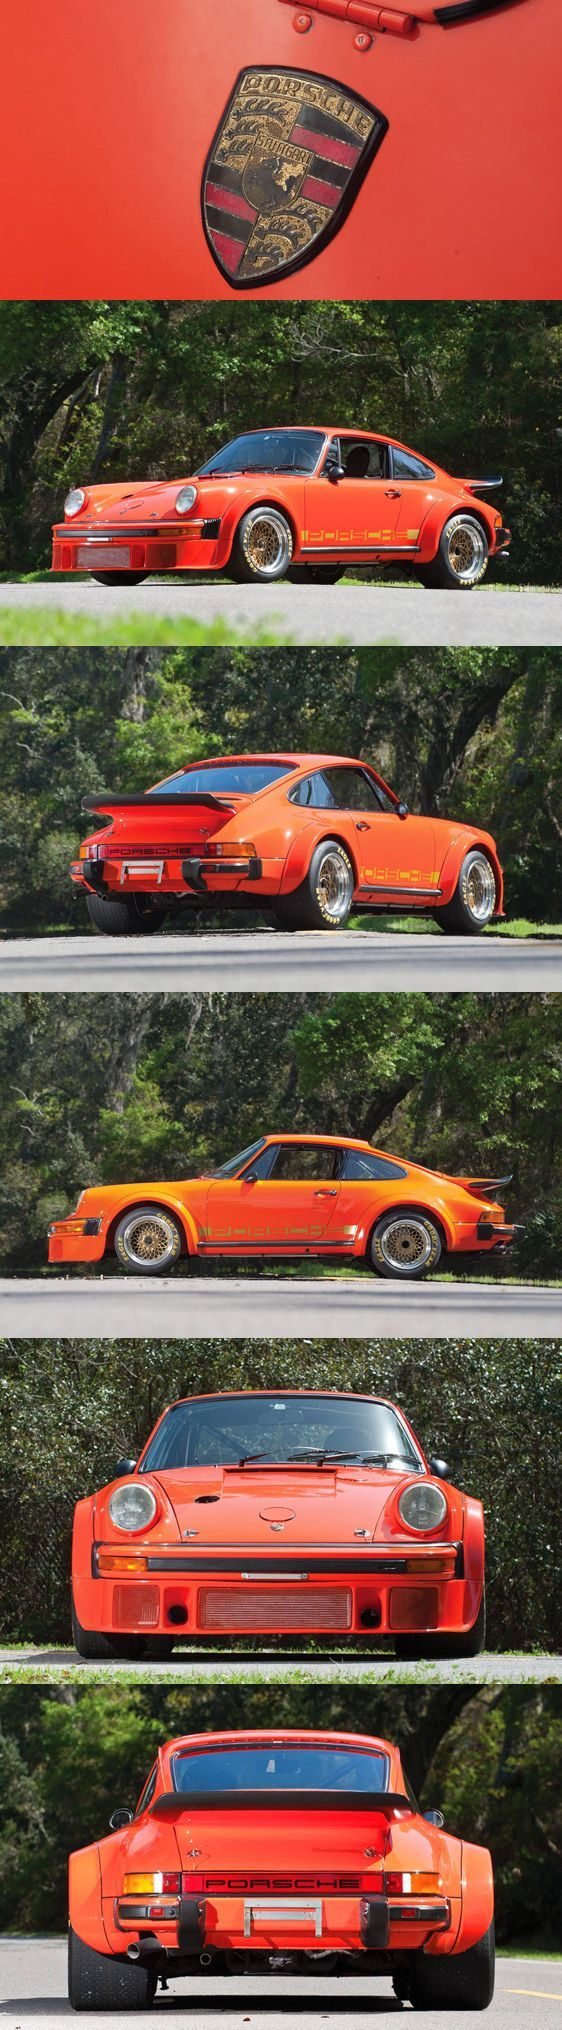 305 Best Porsche Only Images On Pinterest Motorcycle Cars And 993 Varioram Engine Diagram 1976 934 Turbo Rsr Fia Gr 4 31 Examples Produced